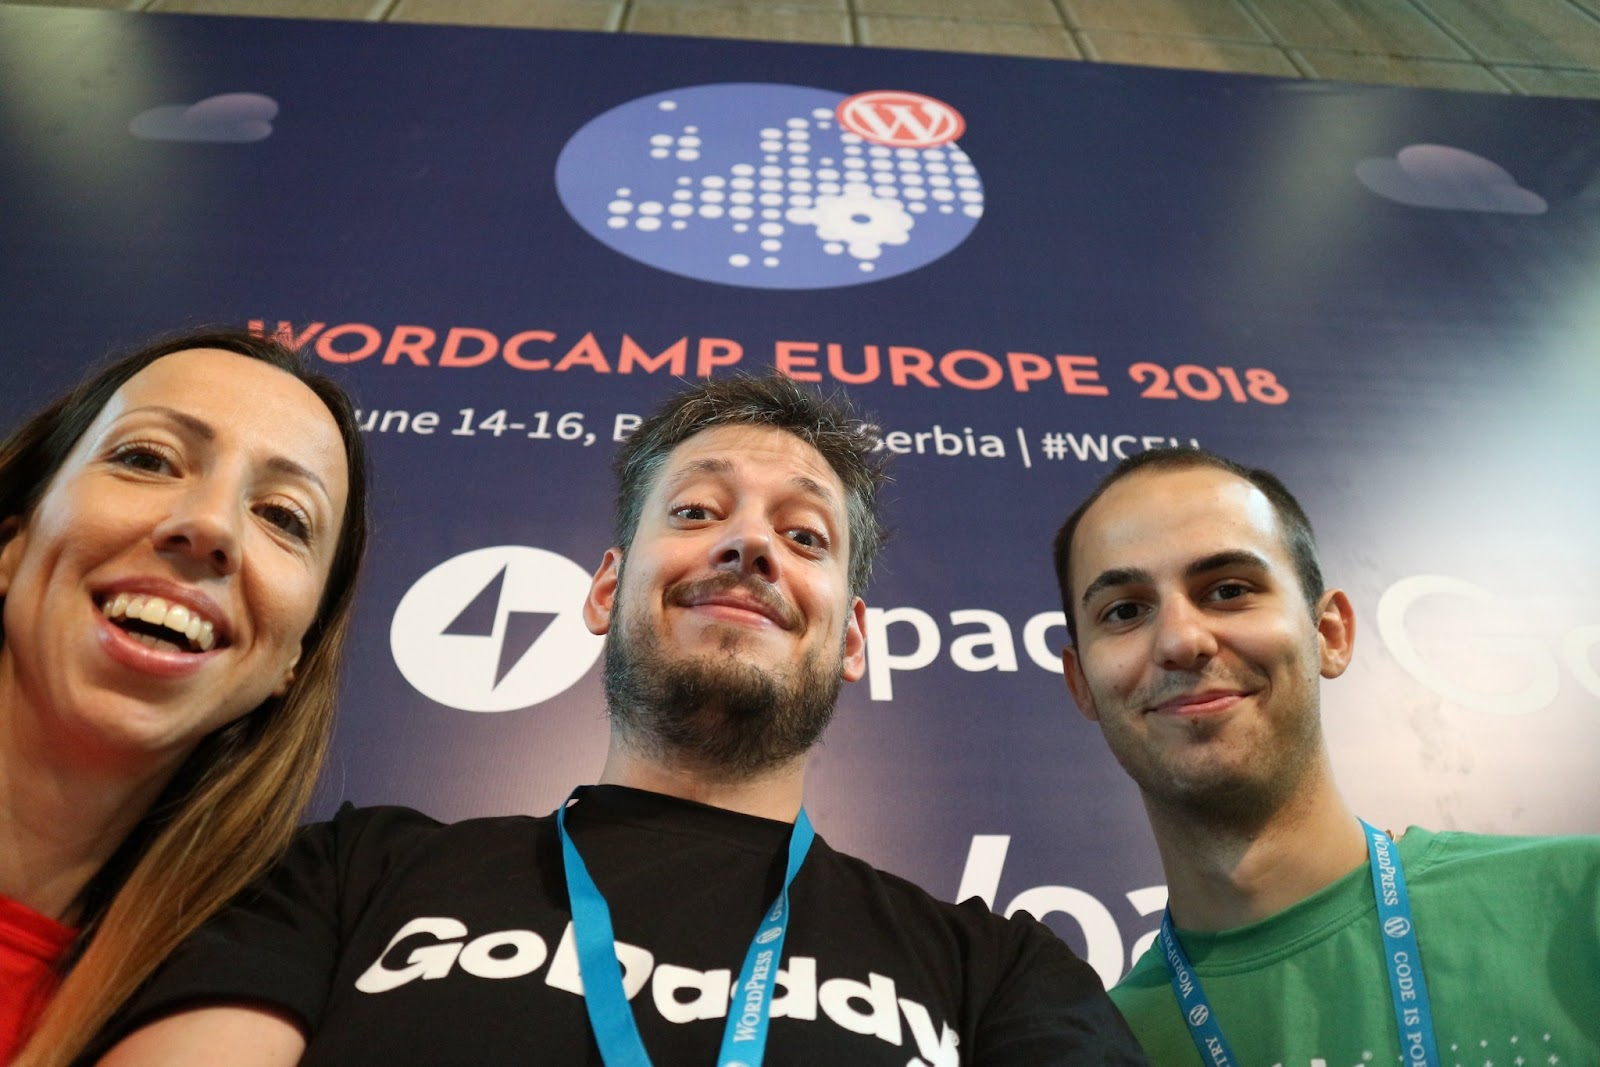 WordCamp Europe 2019 group picture